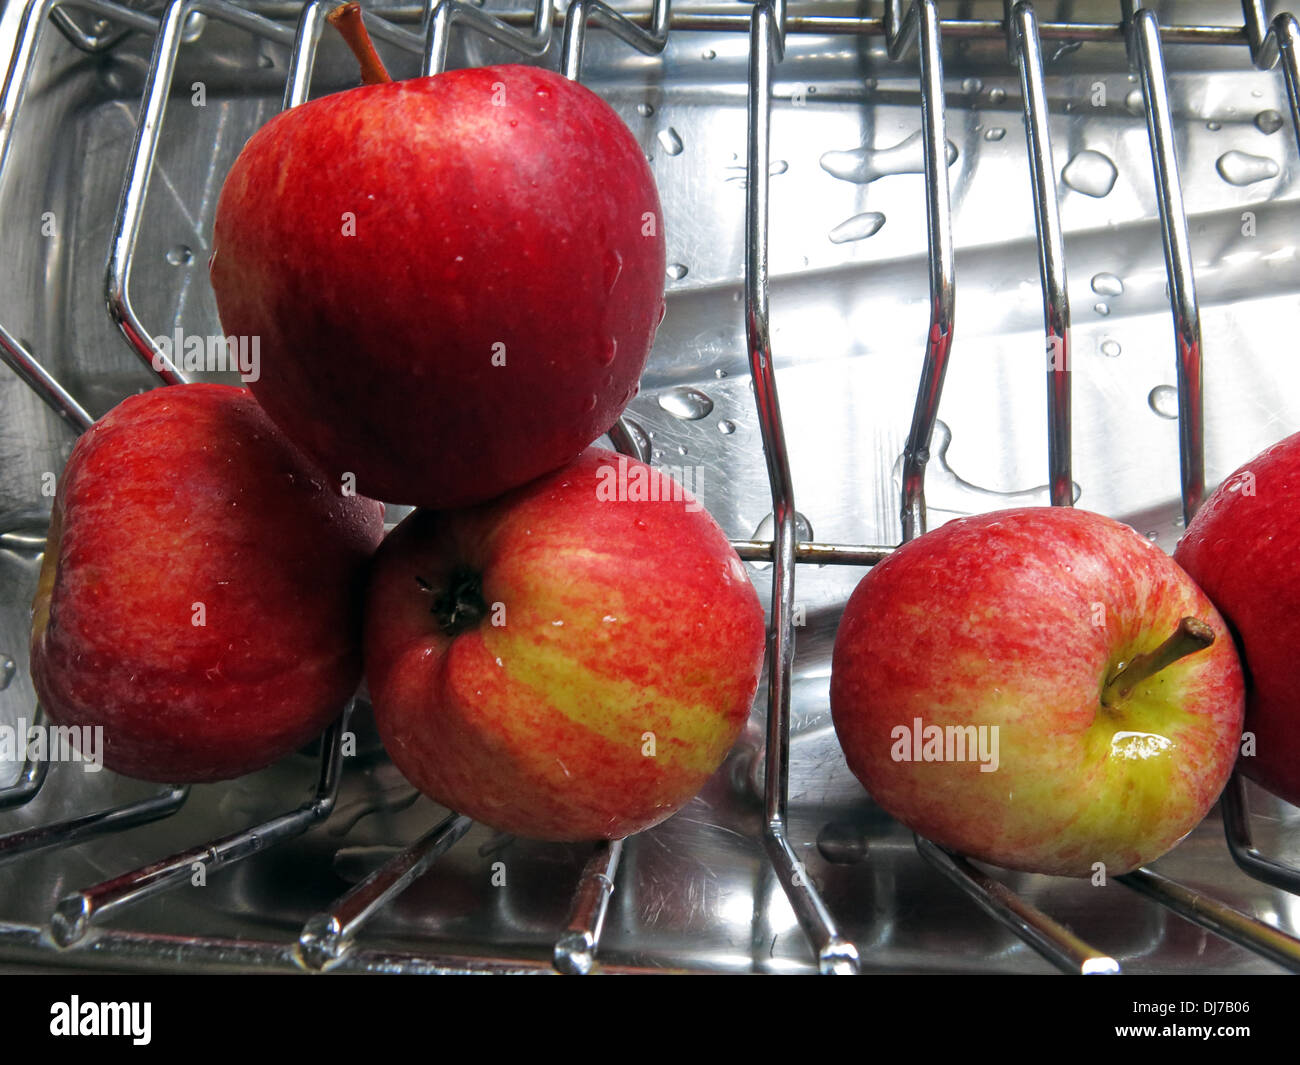 Health freshly washed red apples on a drainer An Apple A Day keeps the Doctor Away - Stock Image